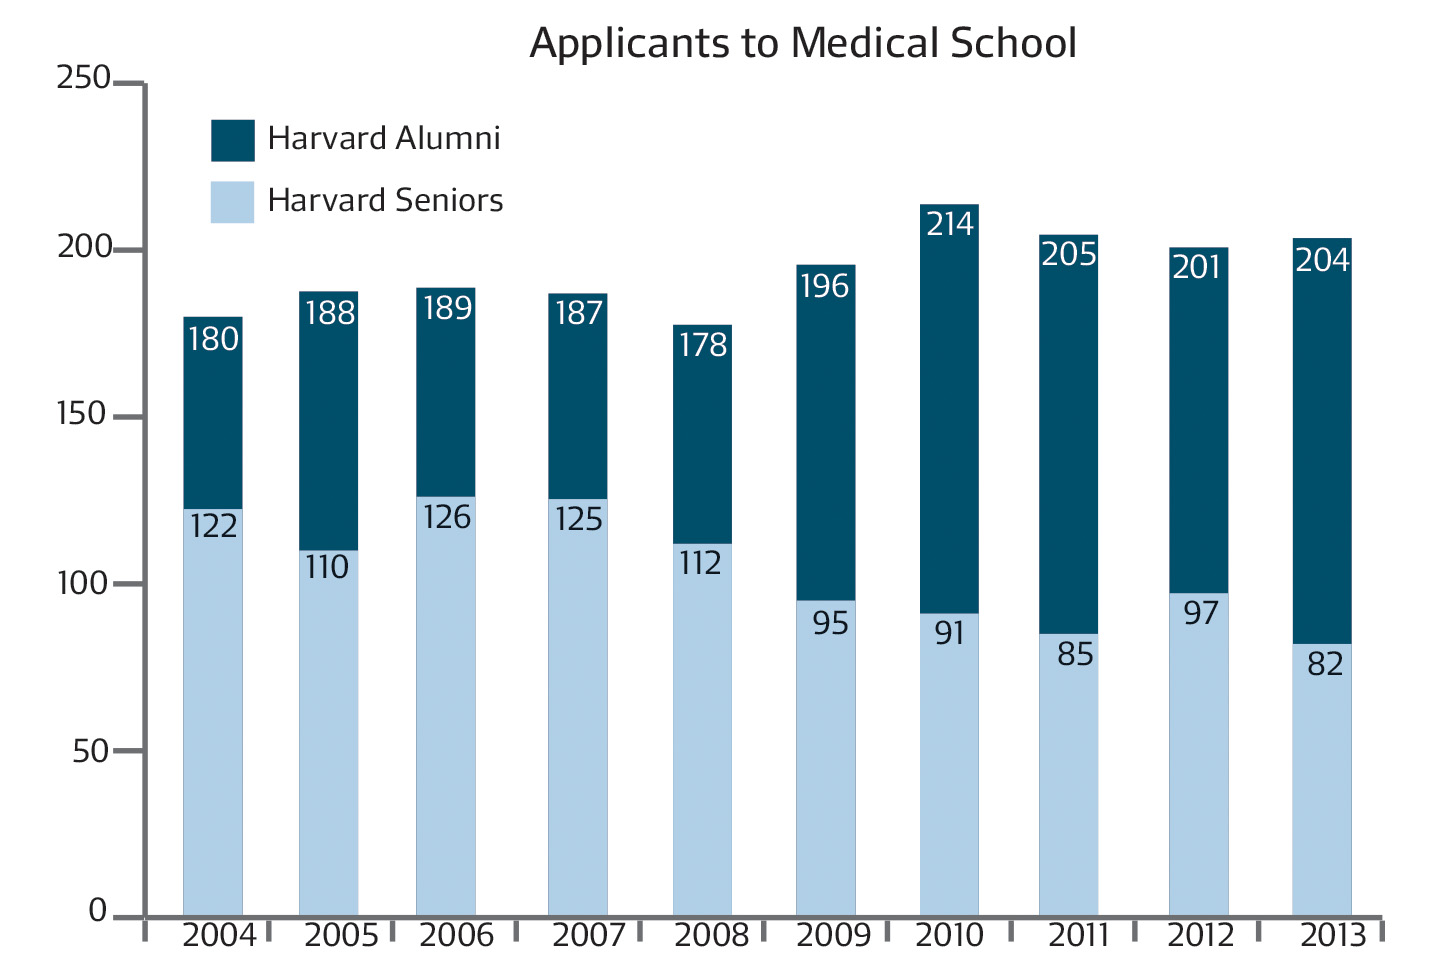 Alumni make up an increasing proportion of medical school applicants as more students take time off before applying.